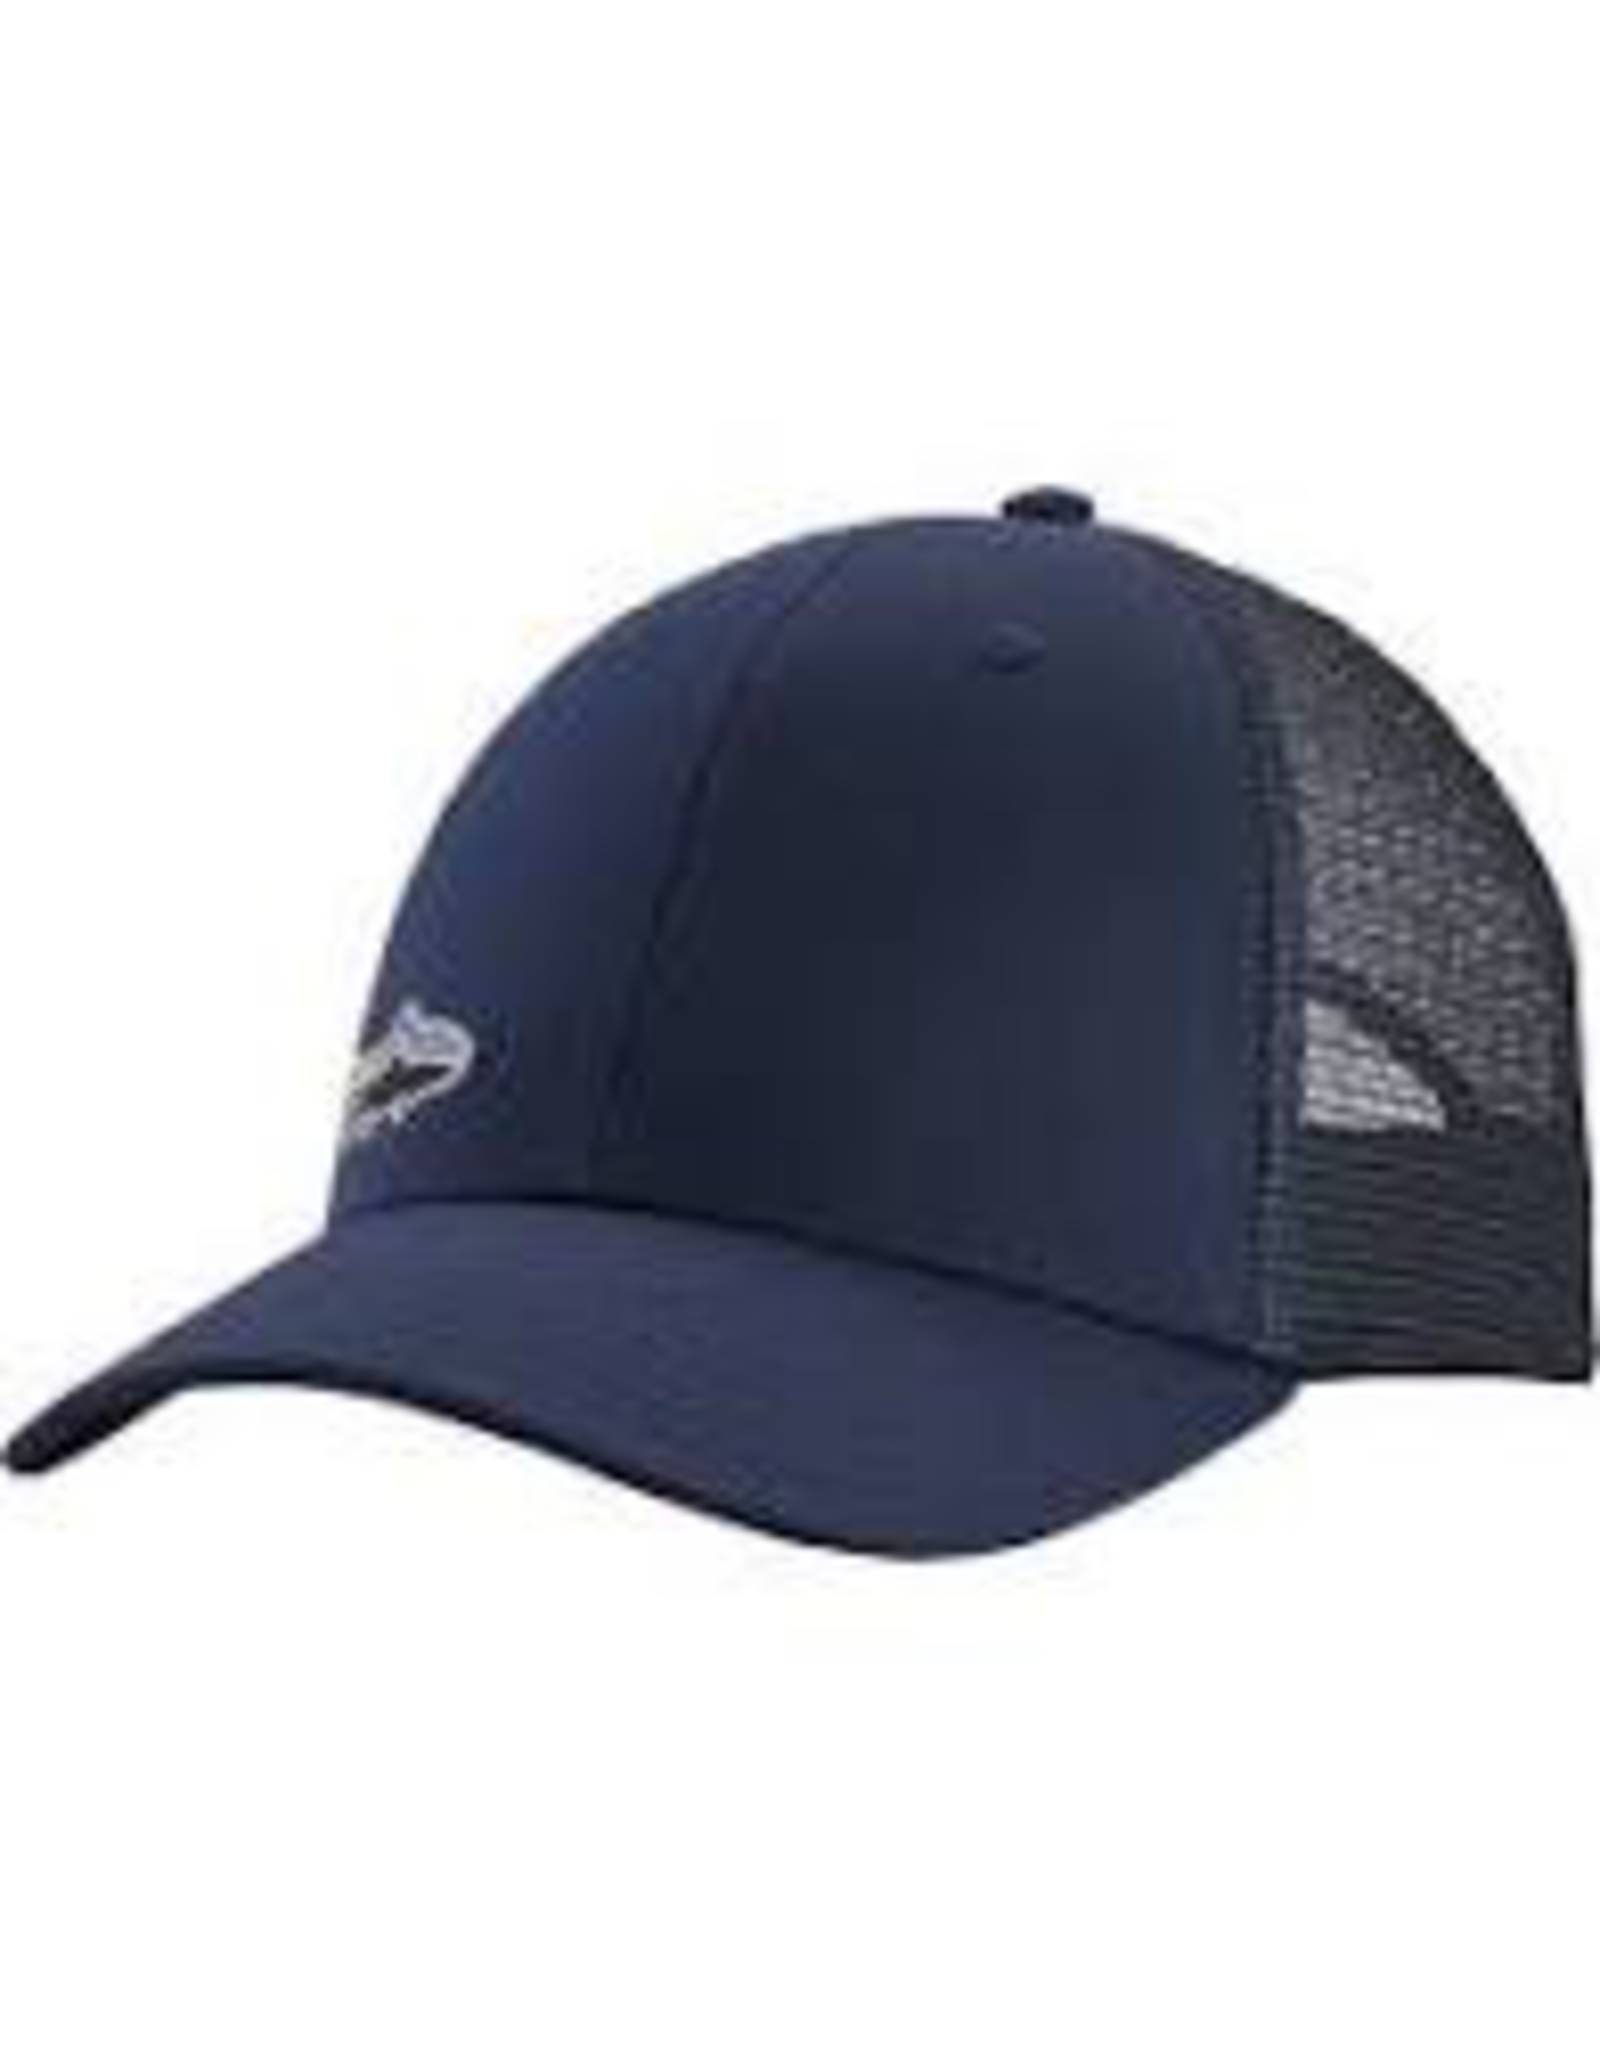 Patagonia Small Fitz Roy Fish LoPro Trucker Hat Navy